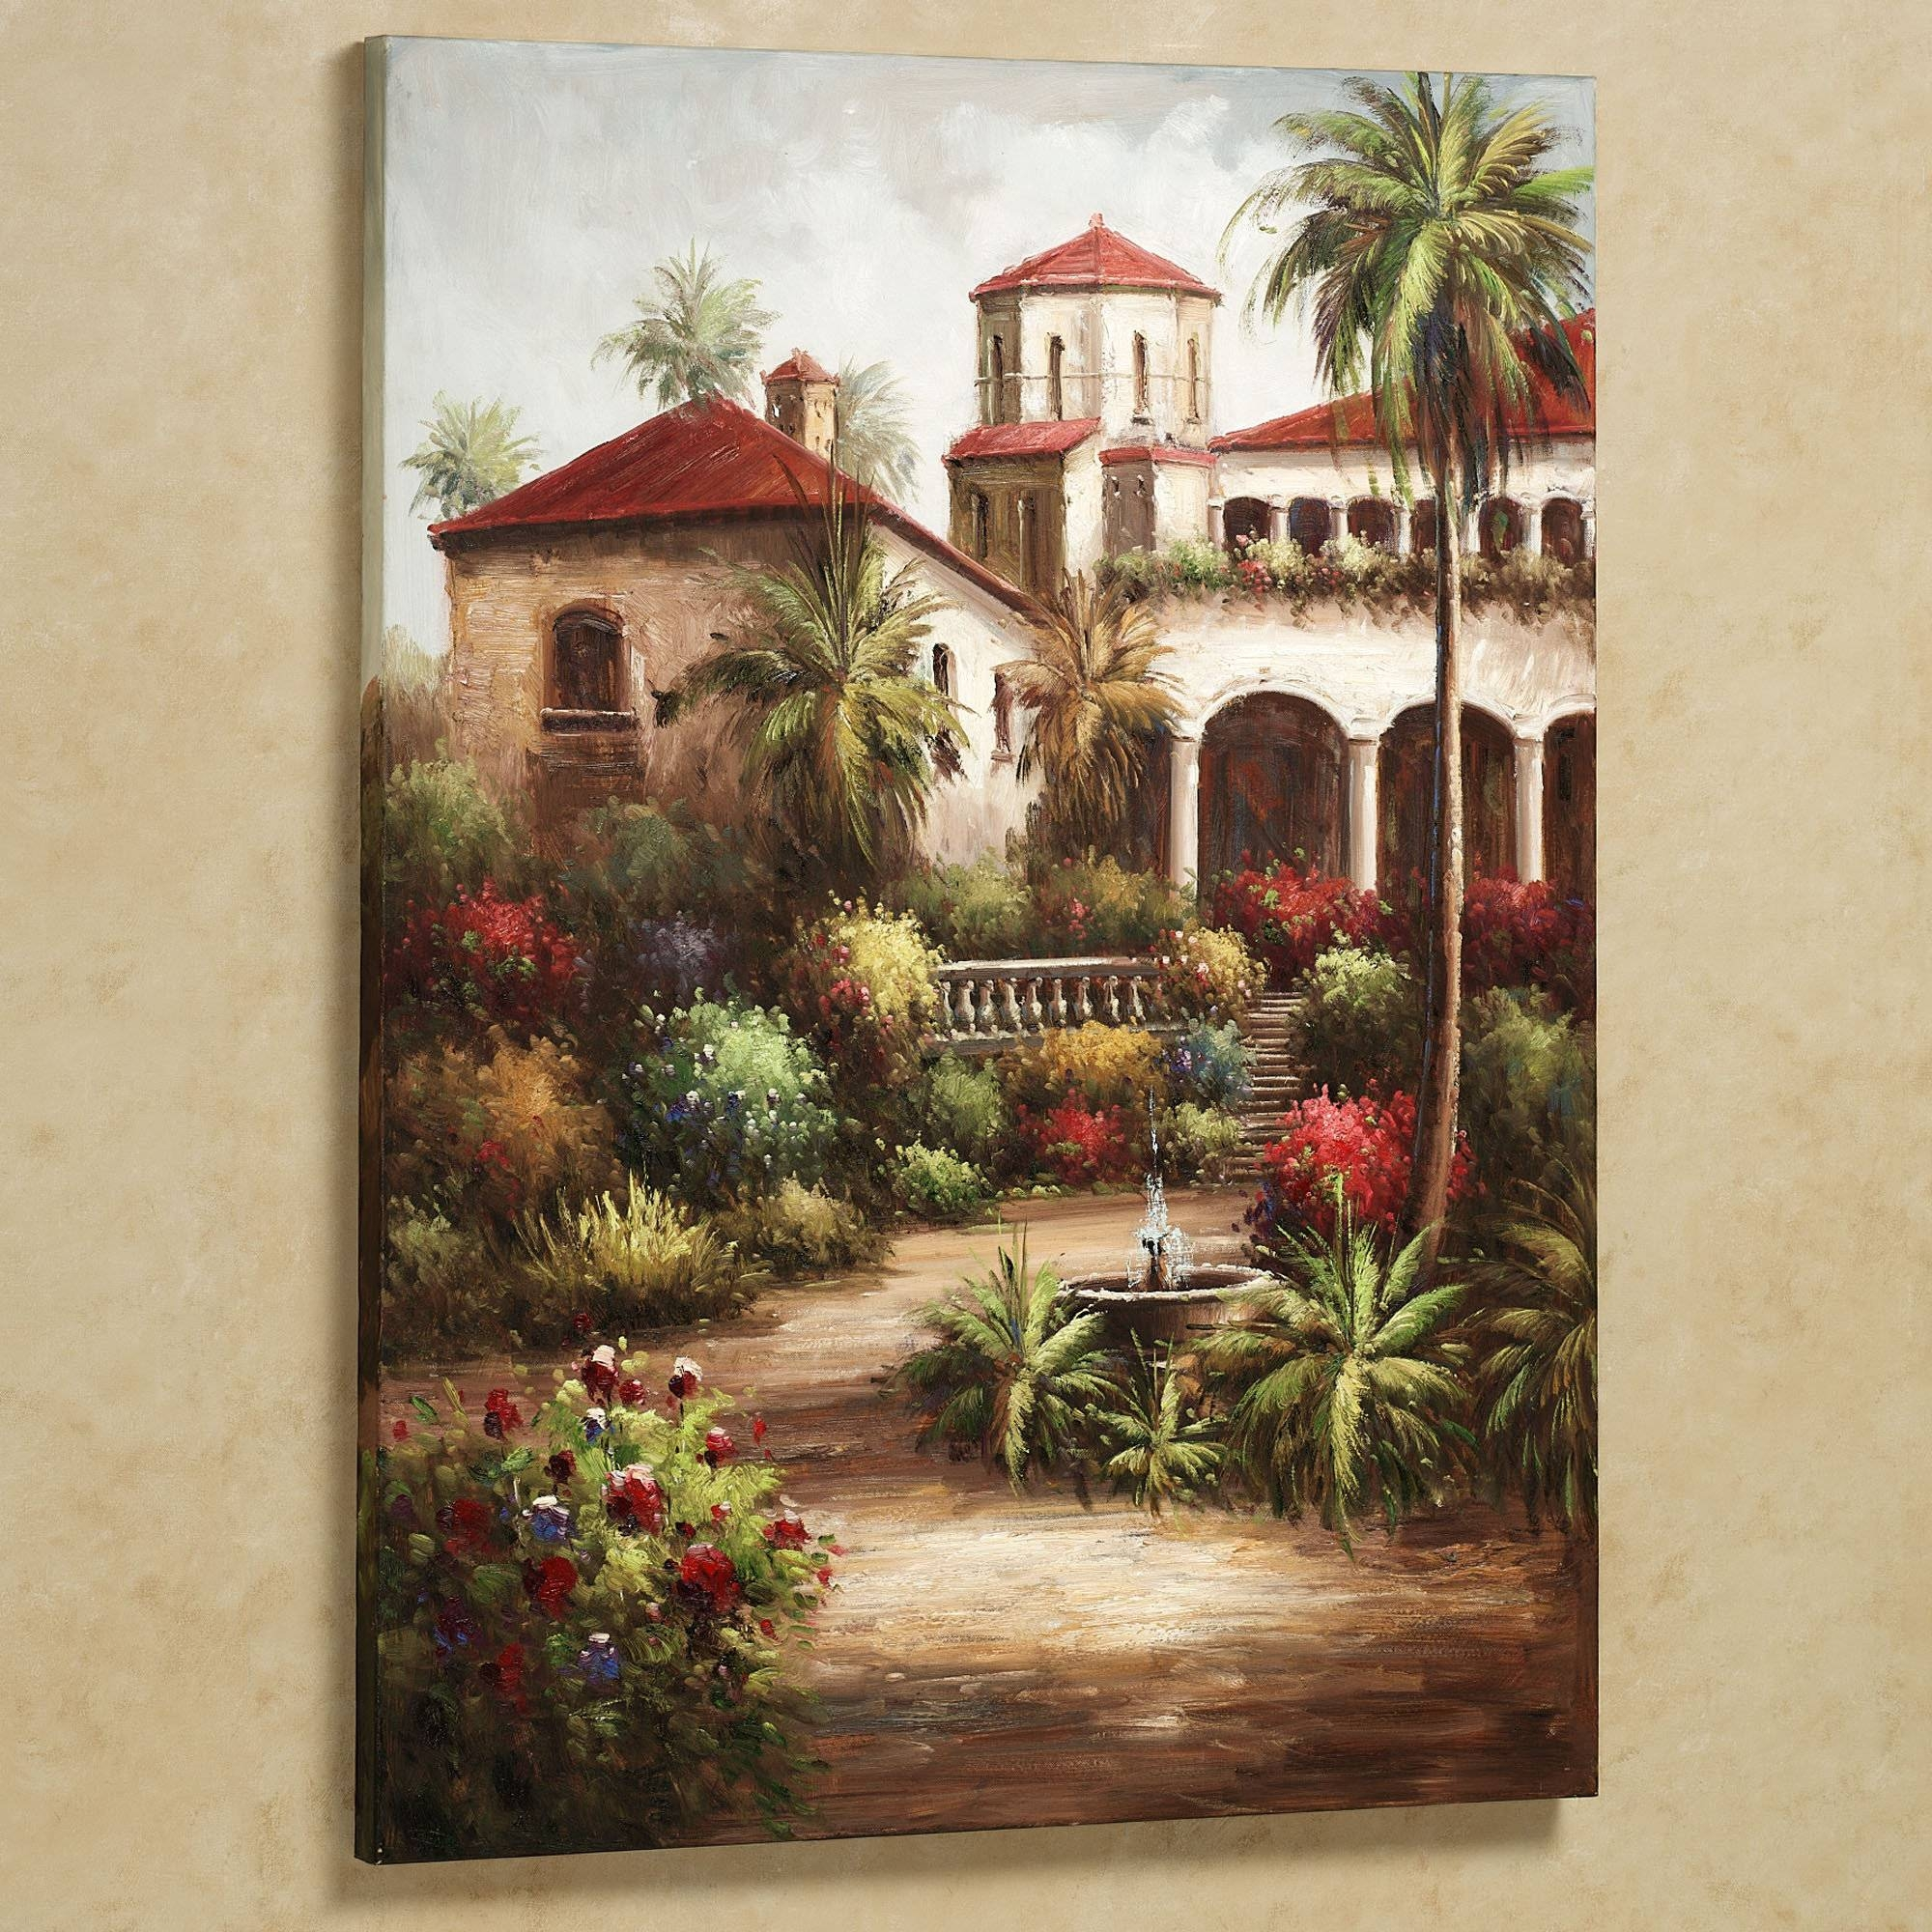 Tuscan Wall Decor Ideas Intended For Most Up To Date Tuscan Wall Art Decor (View 6 of 20)